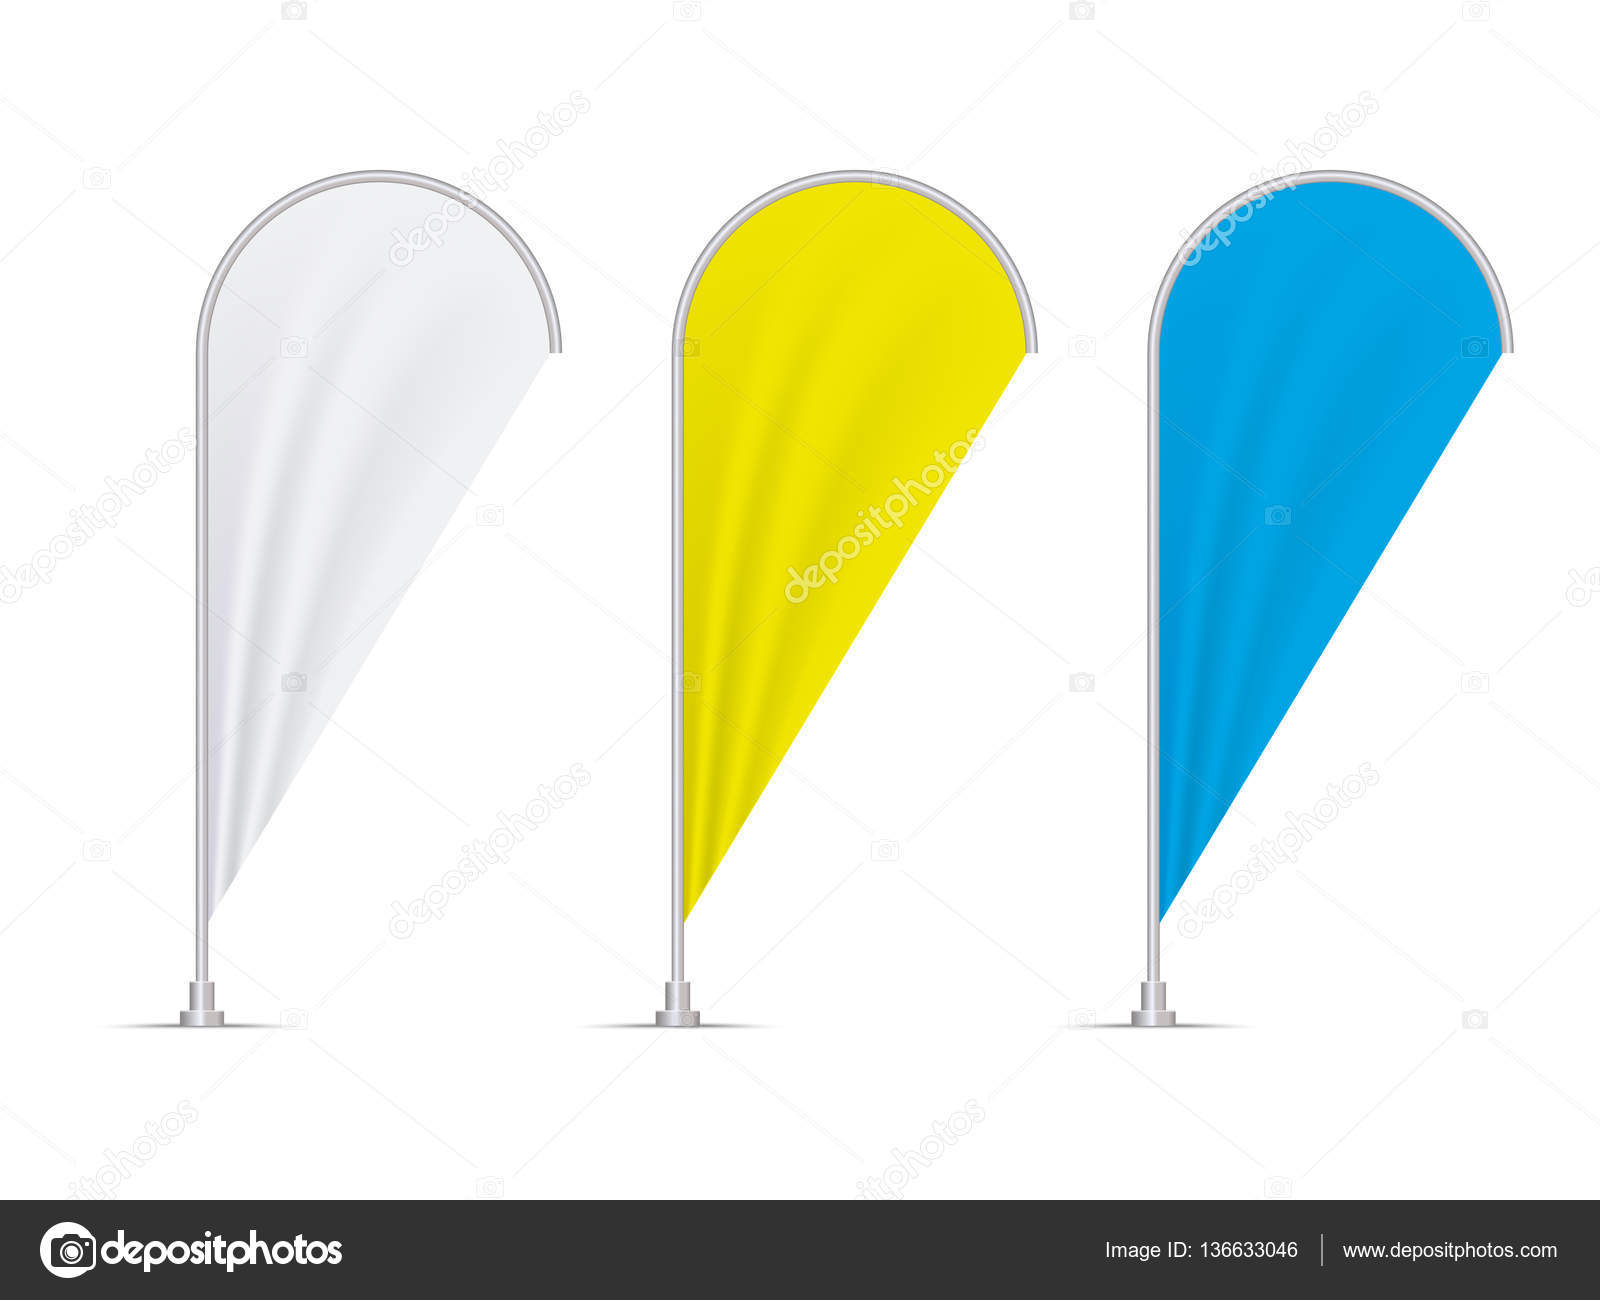 Psd mockup id 46339 in outdoor advertising mockups 3. Set Of Blank Colored Teardrop Flags Isolated On White Background Stock Vector Image By C Jackreznor 136633046